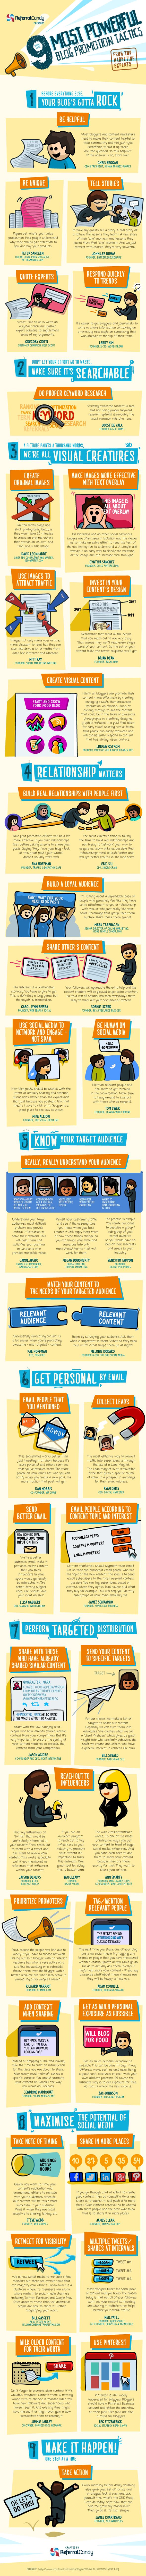 9 Ways to Promote Your Blog and Get More Readers